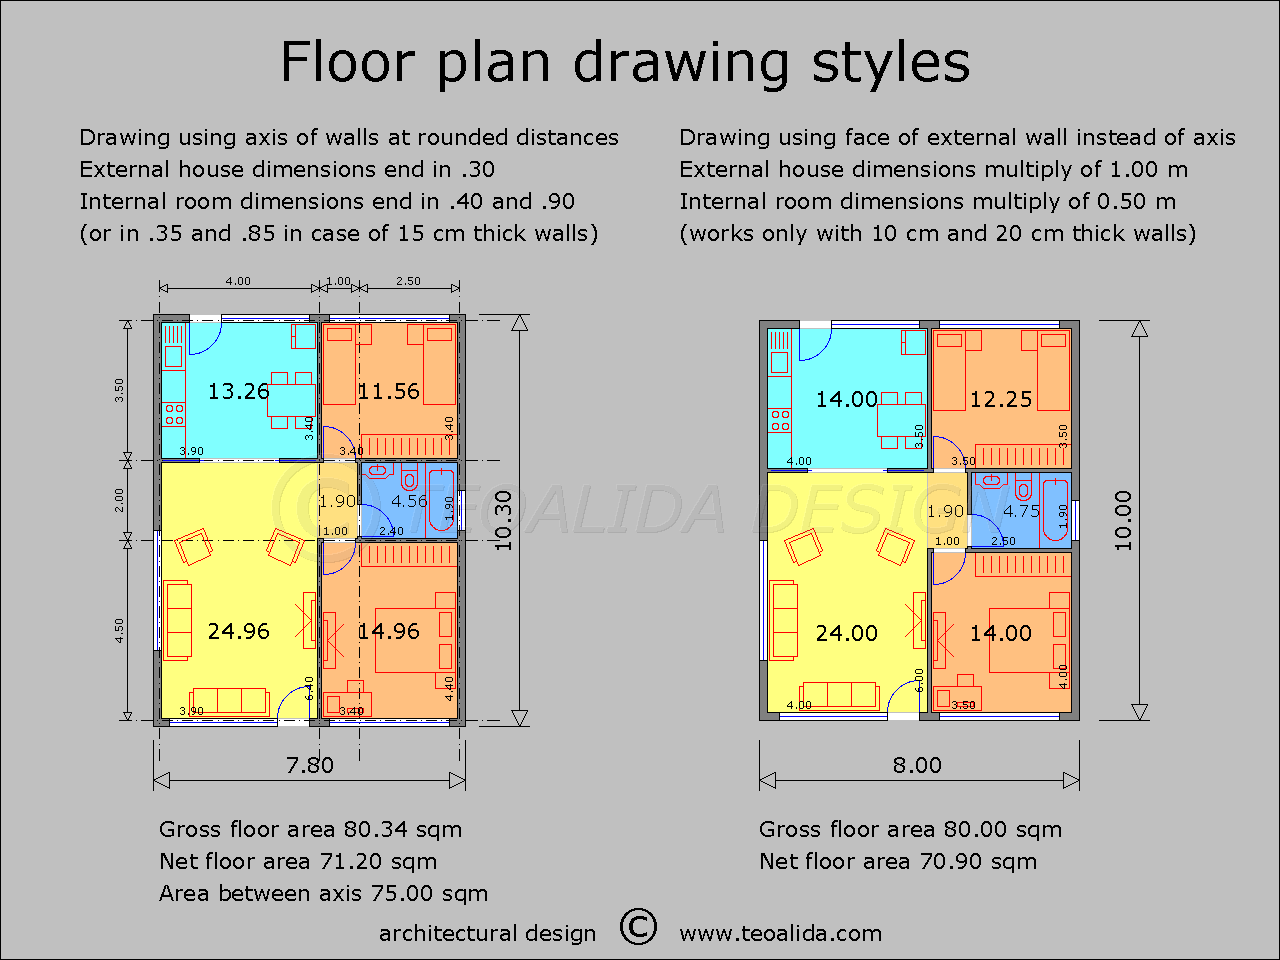 Standard ceiling height for apartments in india www for Floor plan drafting services